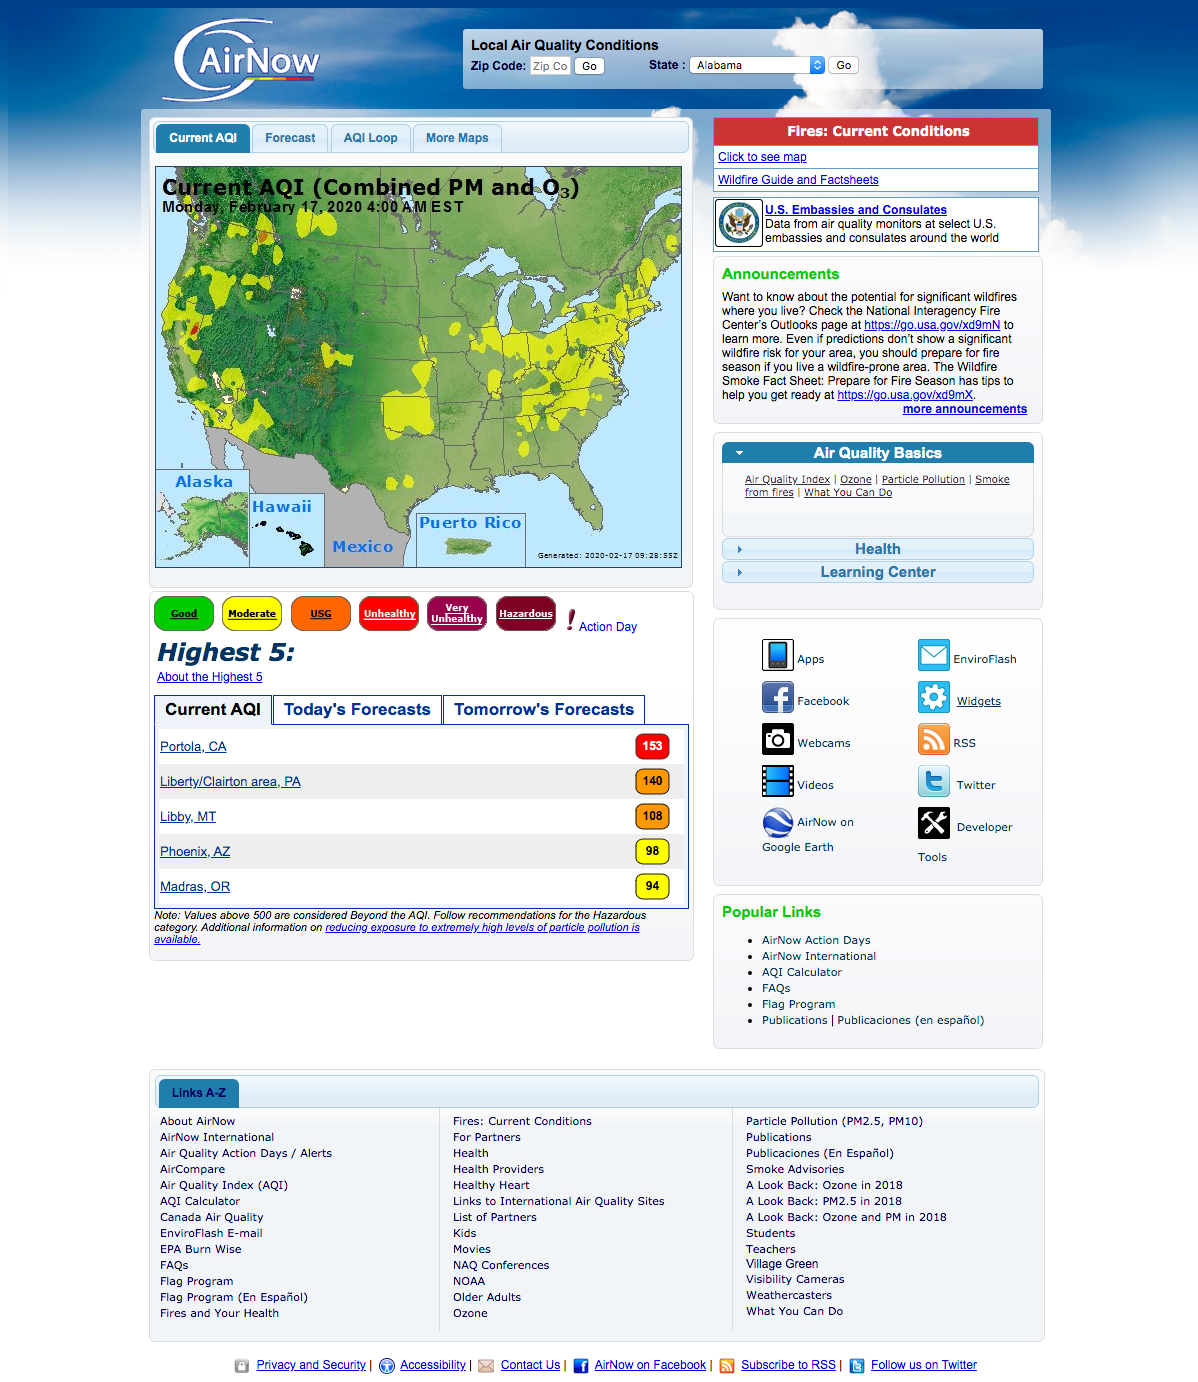 AirNow, every day the Air Quality Index (AQI) tells you